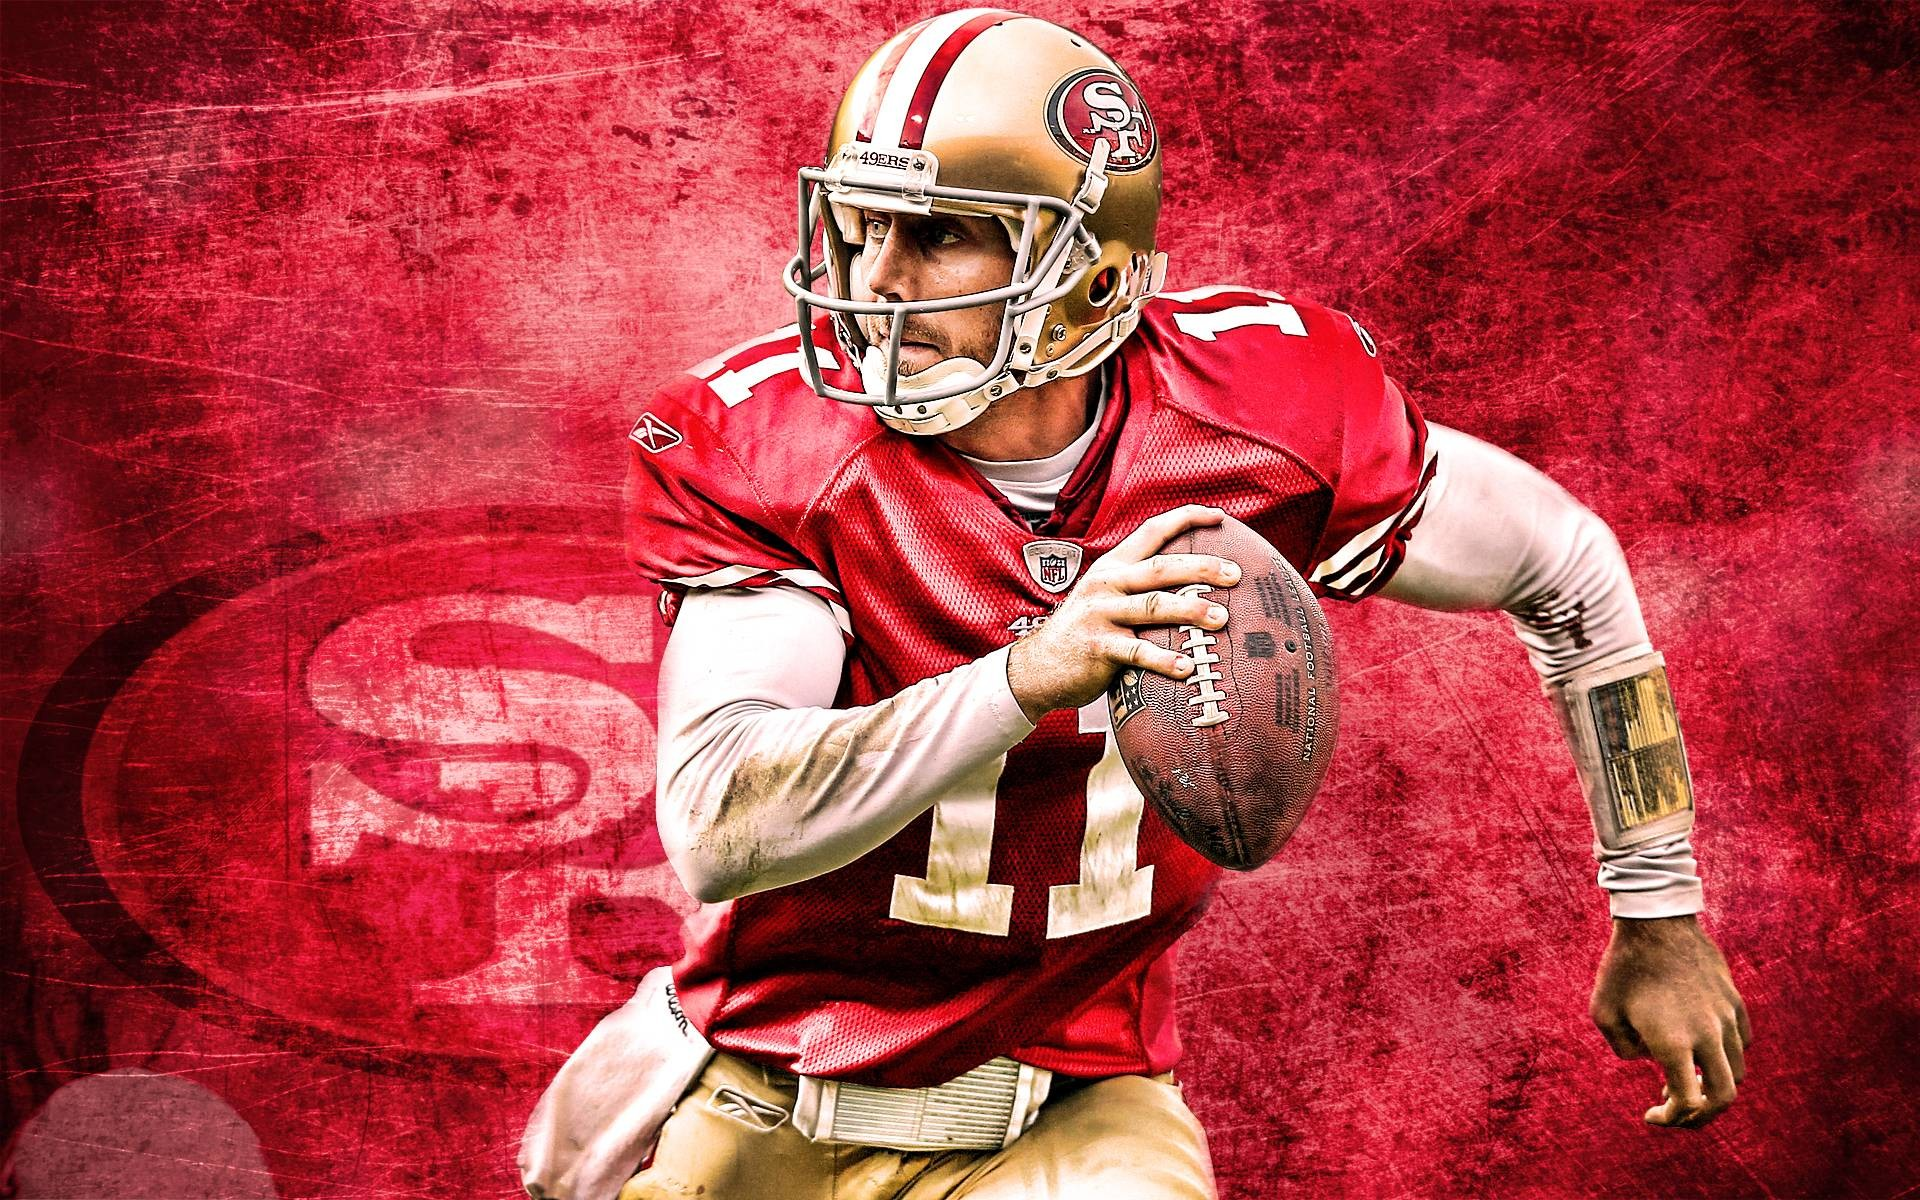 49ers Wallpaper 2018 70 Pictures